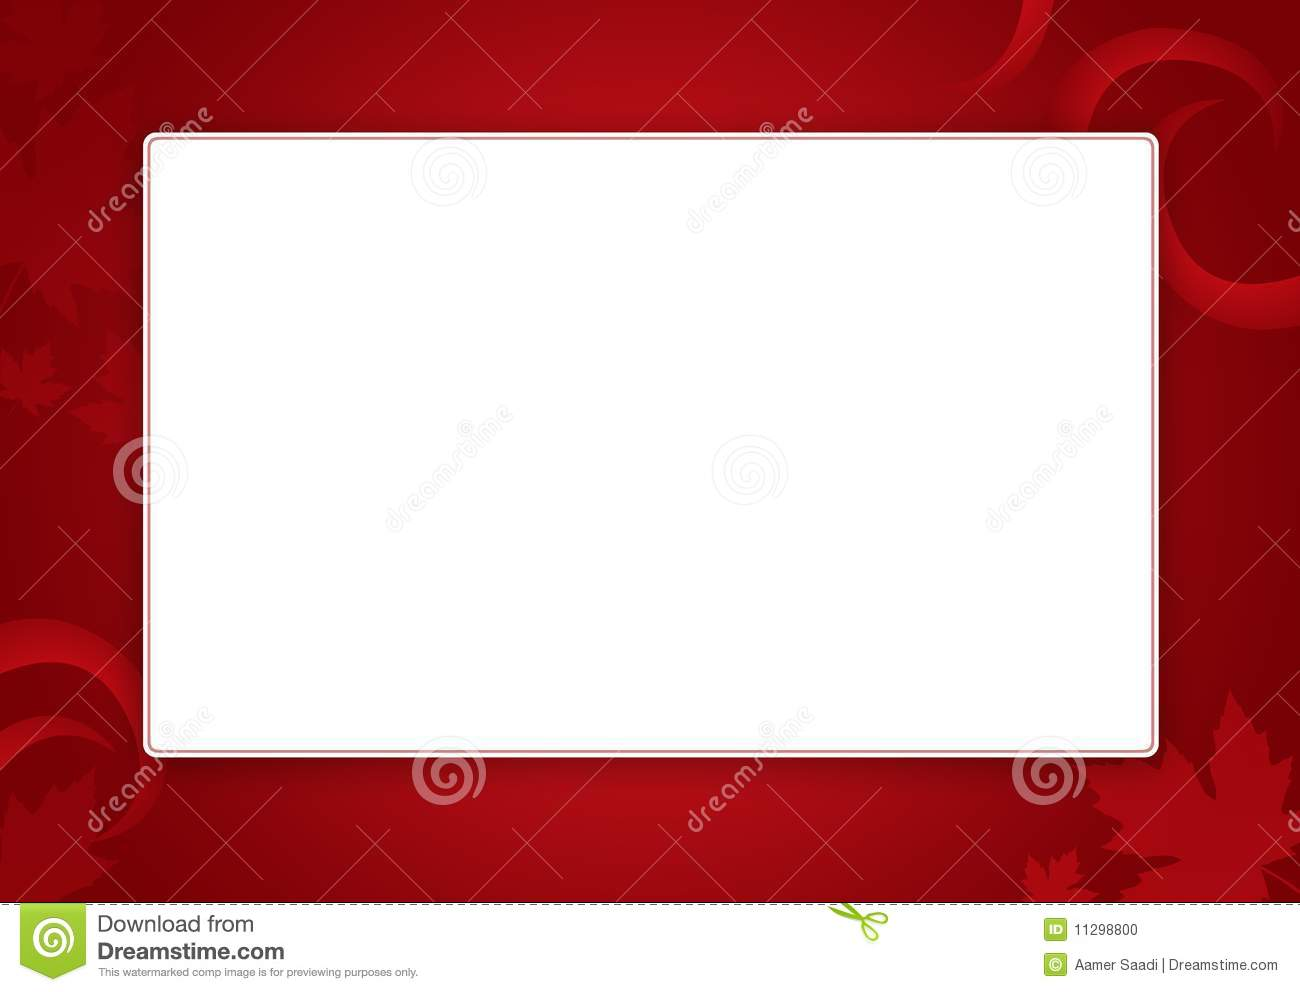 free greeting card templates - greeting card template stock illustration image of wish